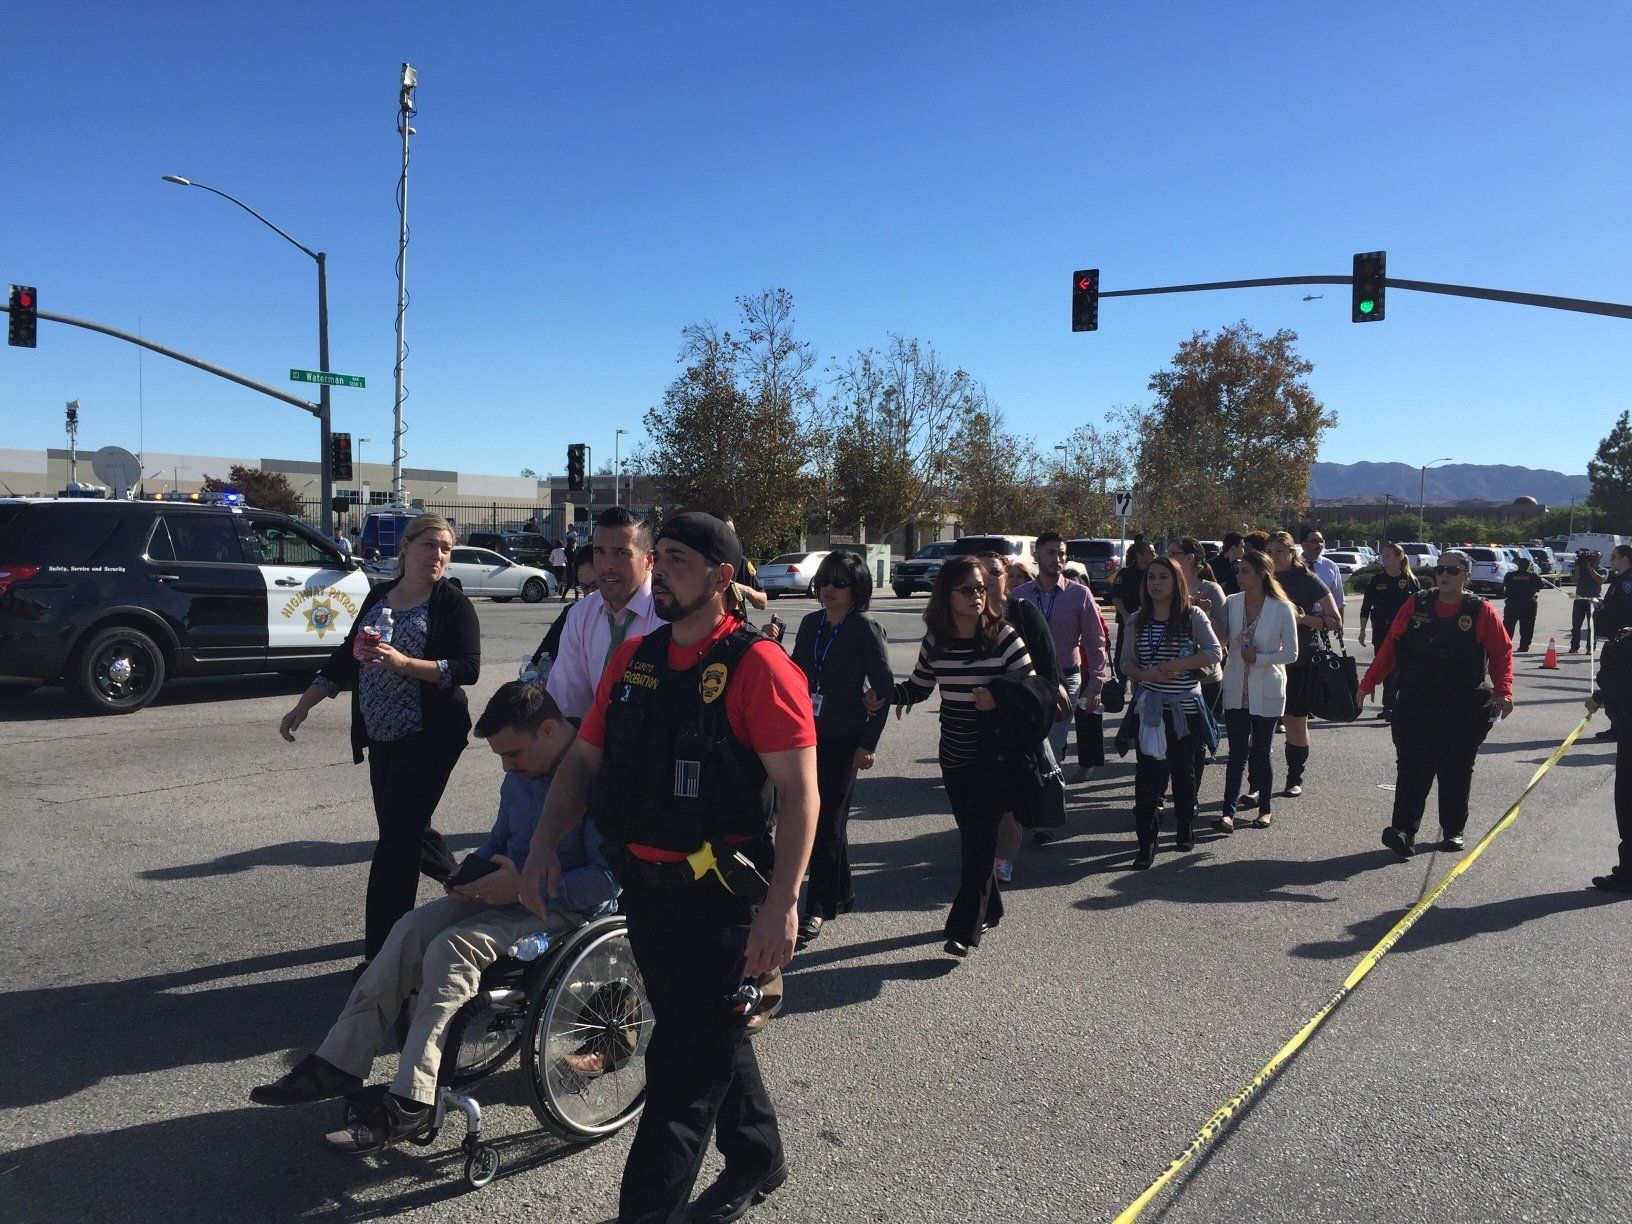 """<span class='image-component__caption' itemprop=""""caption"""">People are evacuated away from the shooting scene in San Bernardino, California, on Wednesday.</span>"""